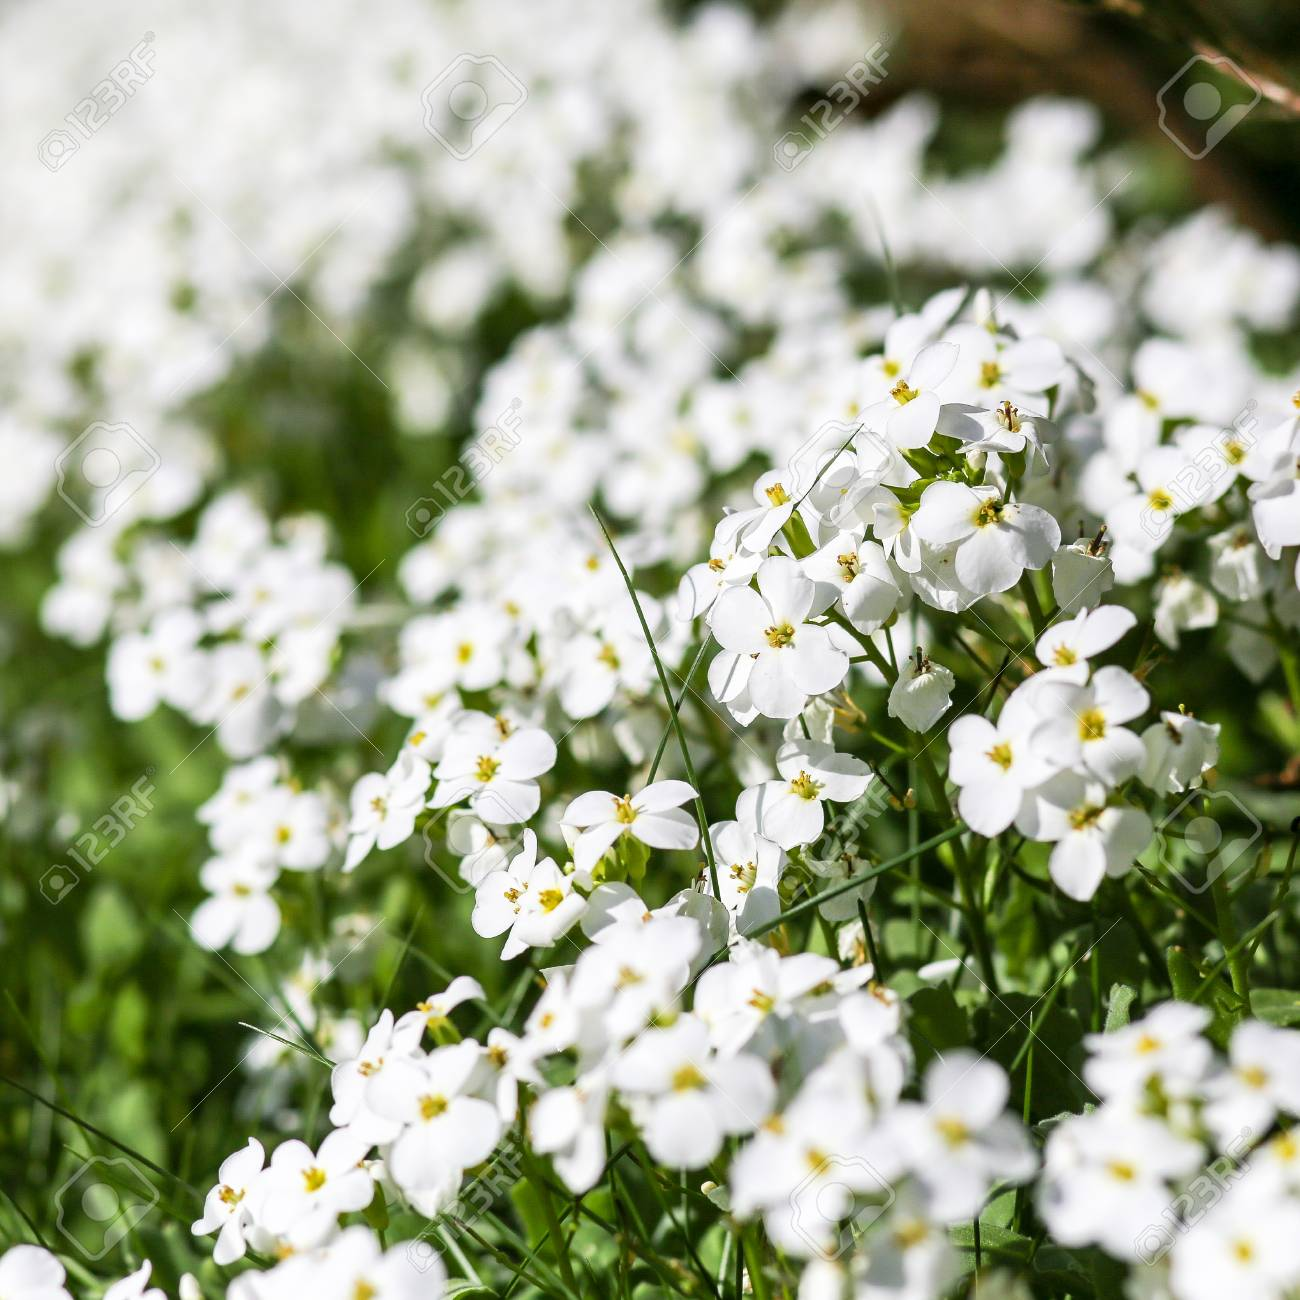 Wild Spring Little White Flowers With Four Petals Stock Photo